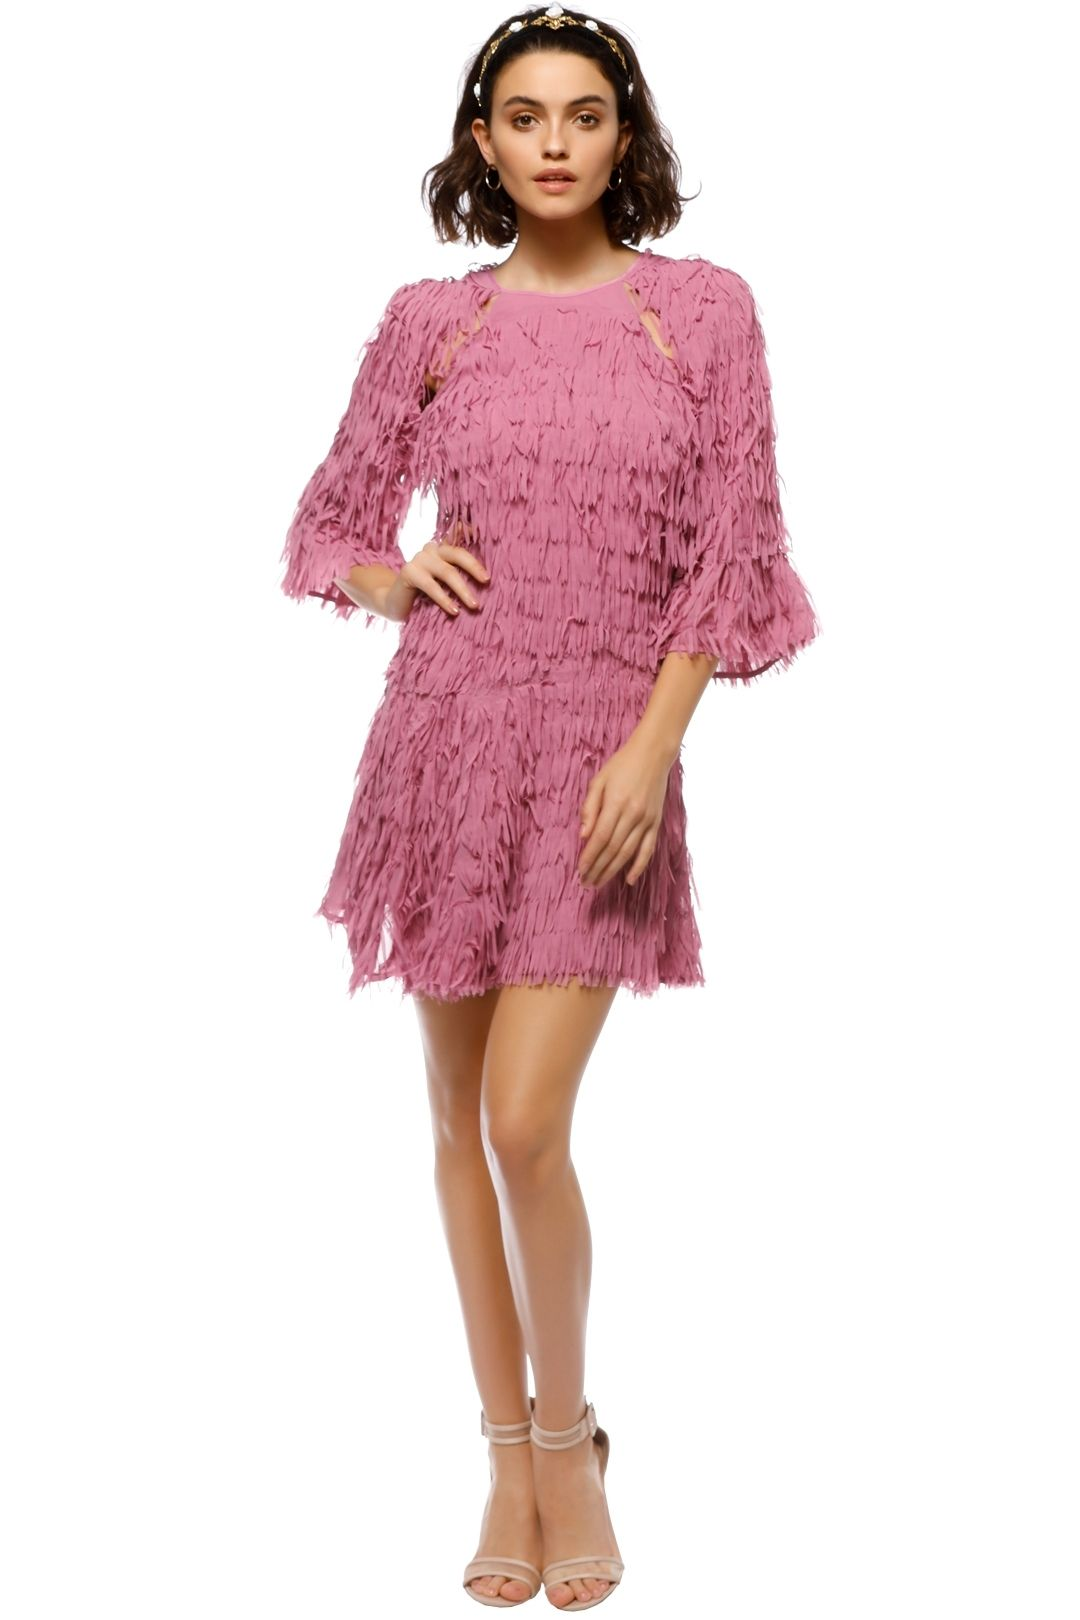 Talulah - Leilani Fringe Mini Dress - Pink - Front